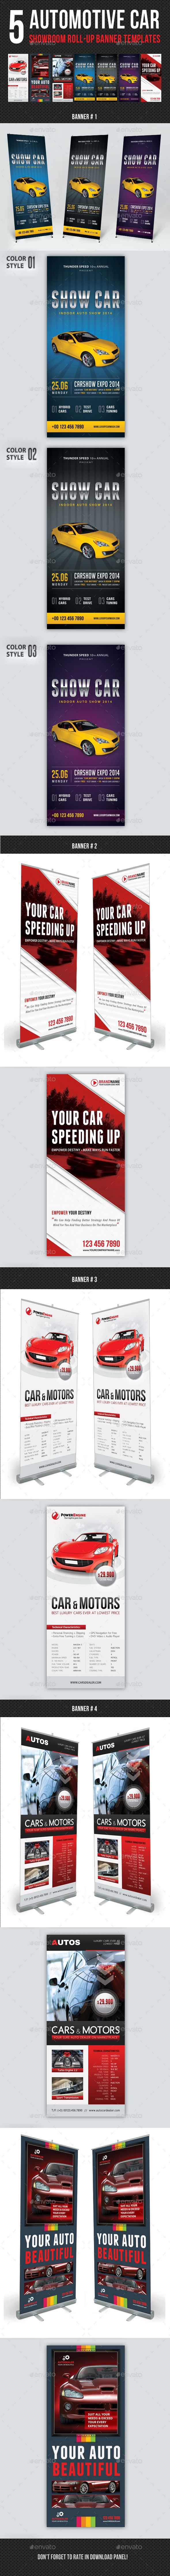 5 High impact Roll-Up Banner Template Layouts, perfect for business advertisement or product promotion! Save your time and money a